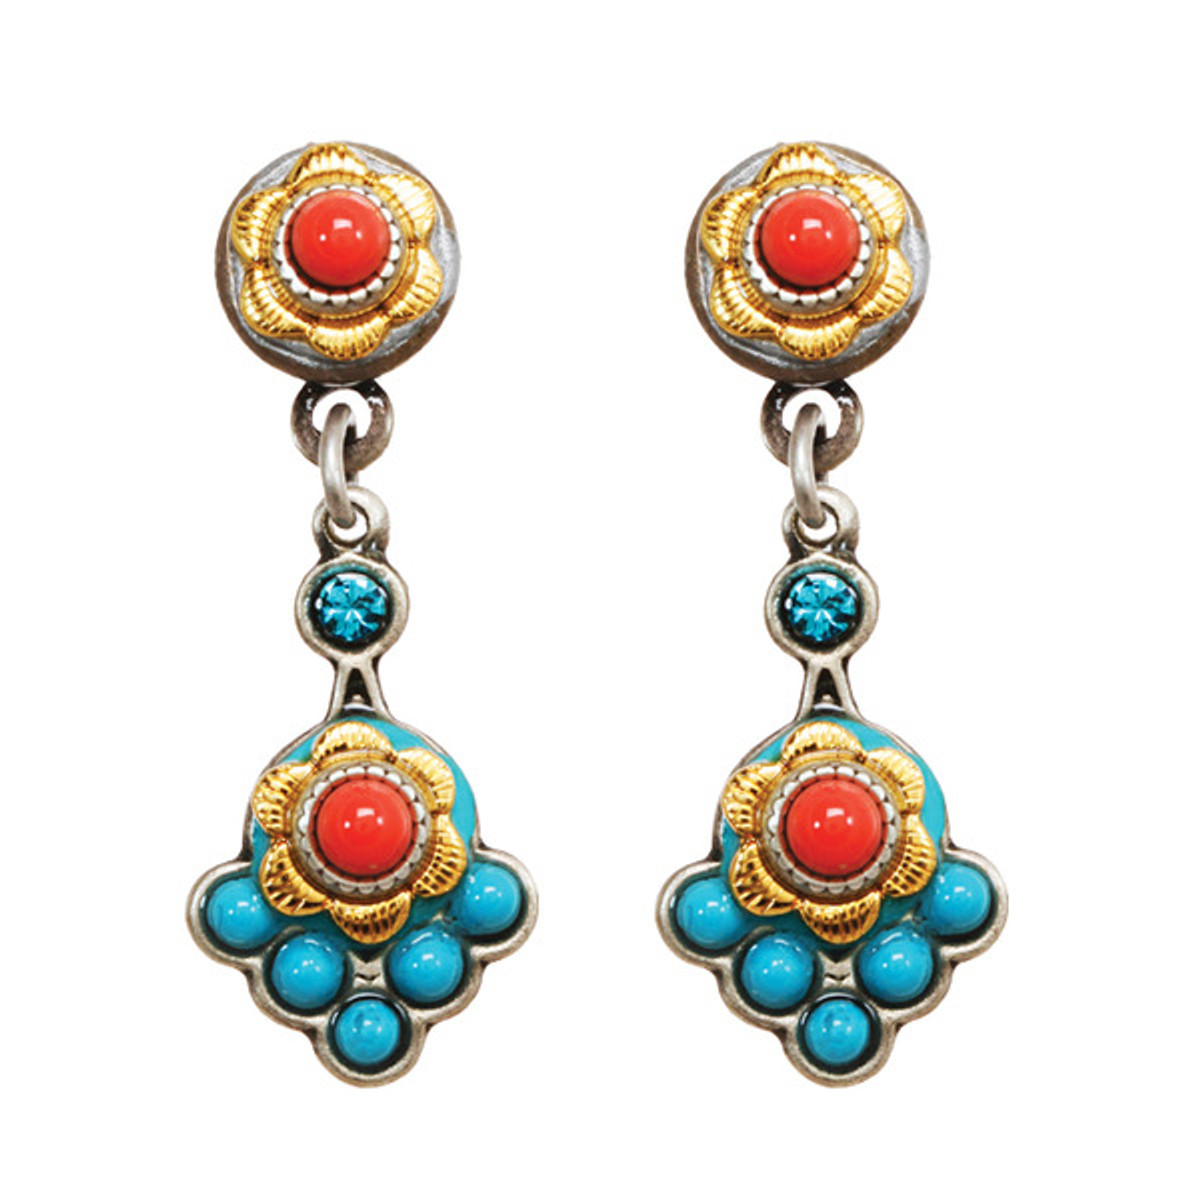 Michal Golan Earrings Coral Sea - S7642